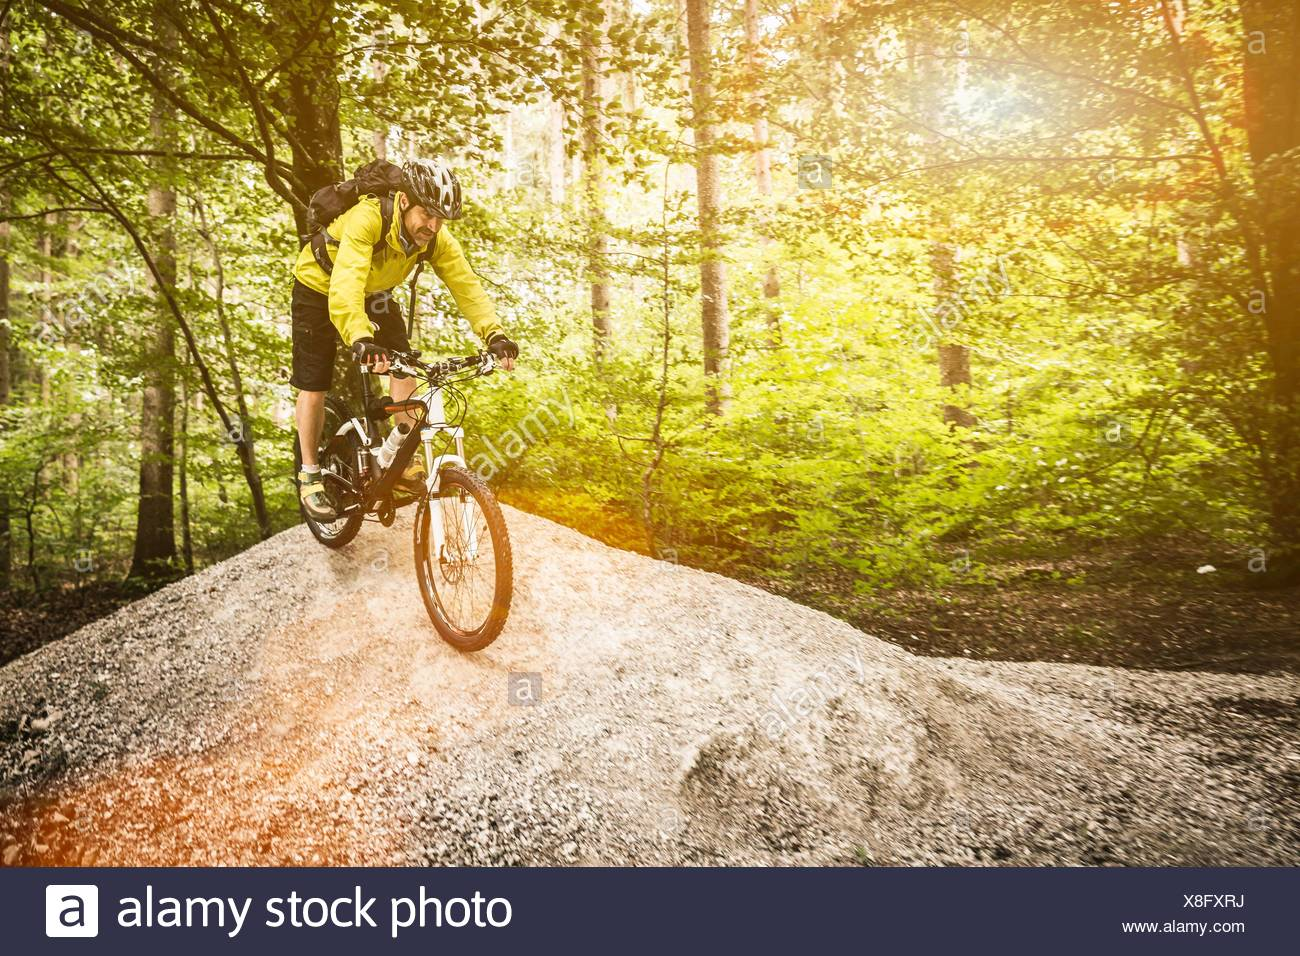 Mature male mountain biker cycling over mound in forest - Stock Image